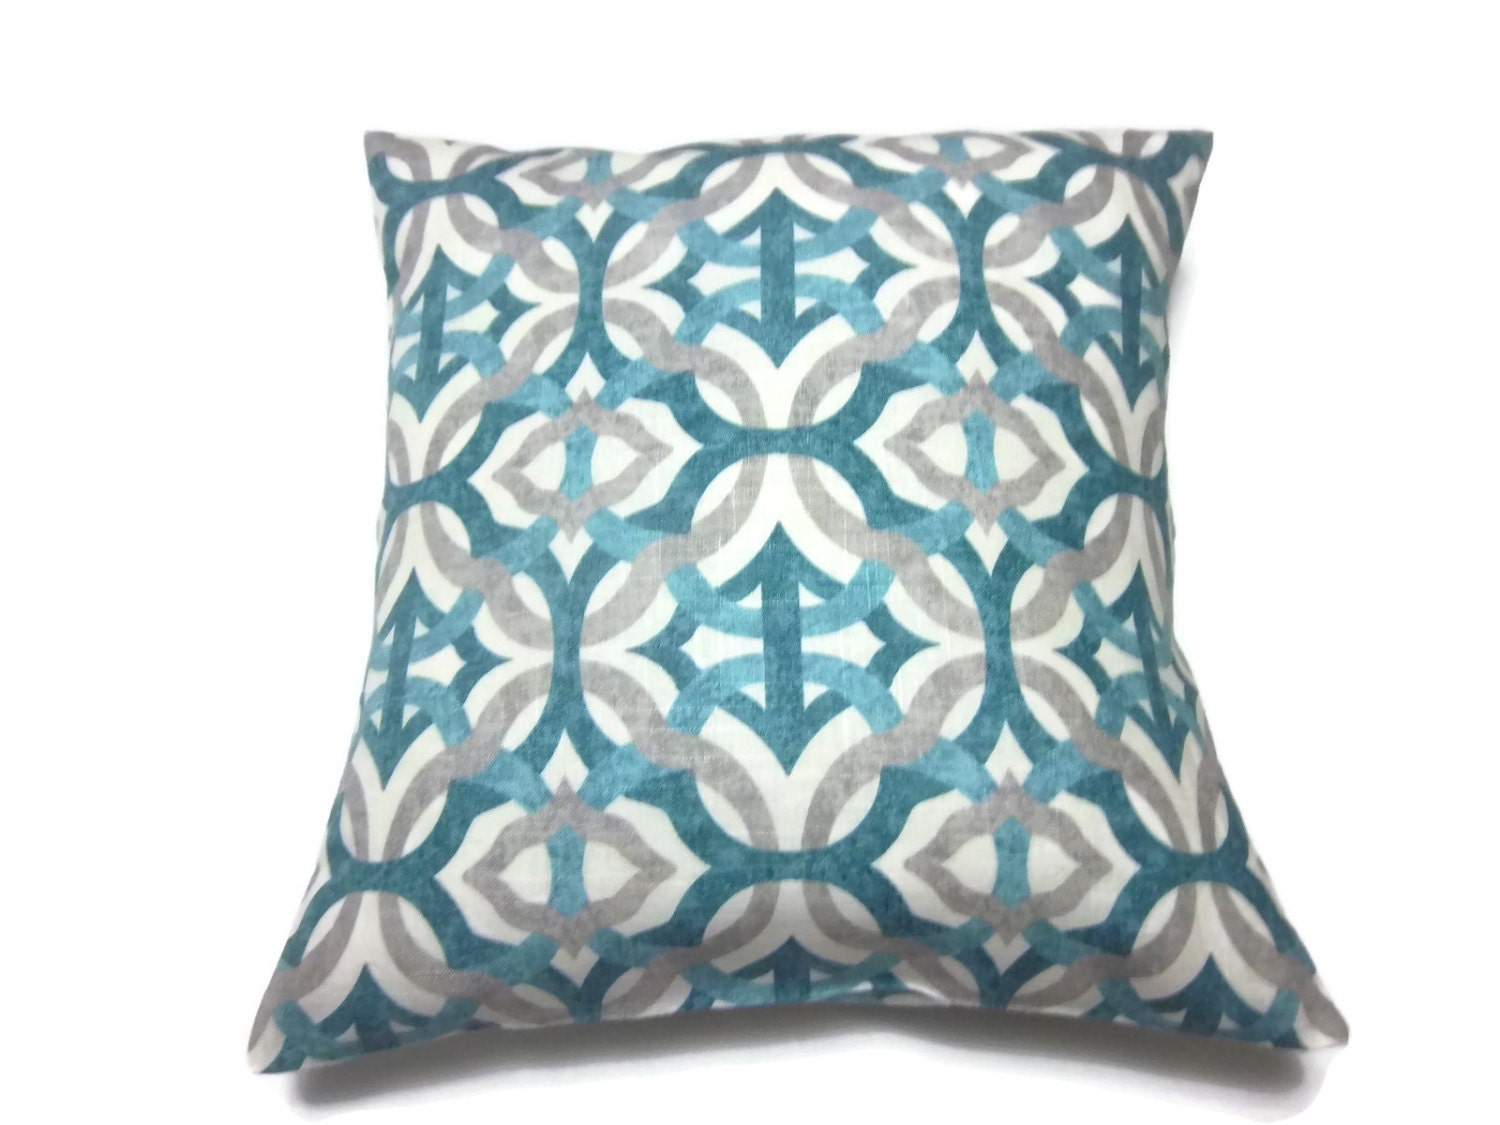 Decorative Pillows With Teal : Decorative Pillow Cover Teal Gray Ivory Damask Same Fabric